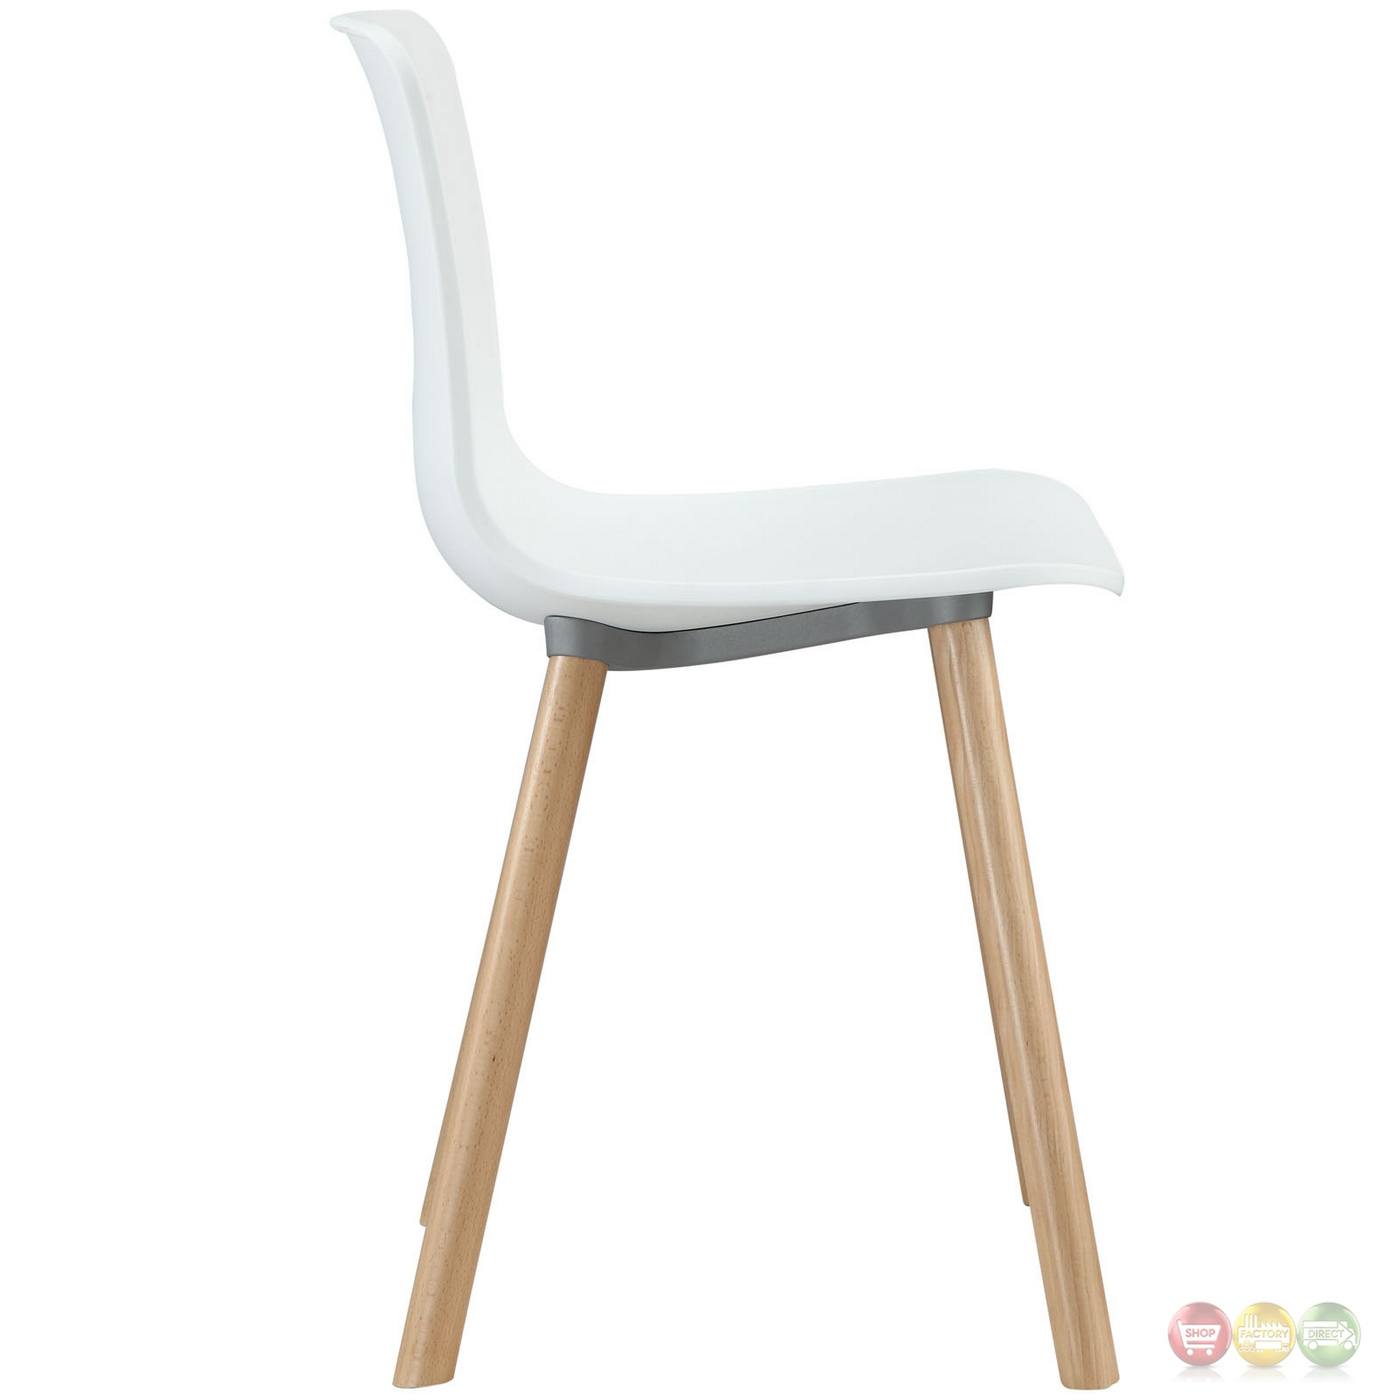 sprung modern molded plastic side chair with wood dowel legs white. Black Bedroom Furniture Sets. Home Design Ideas